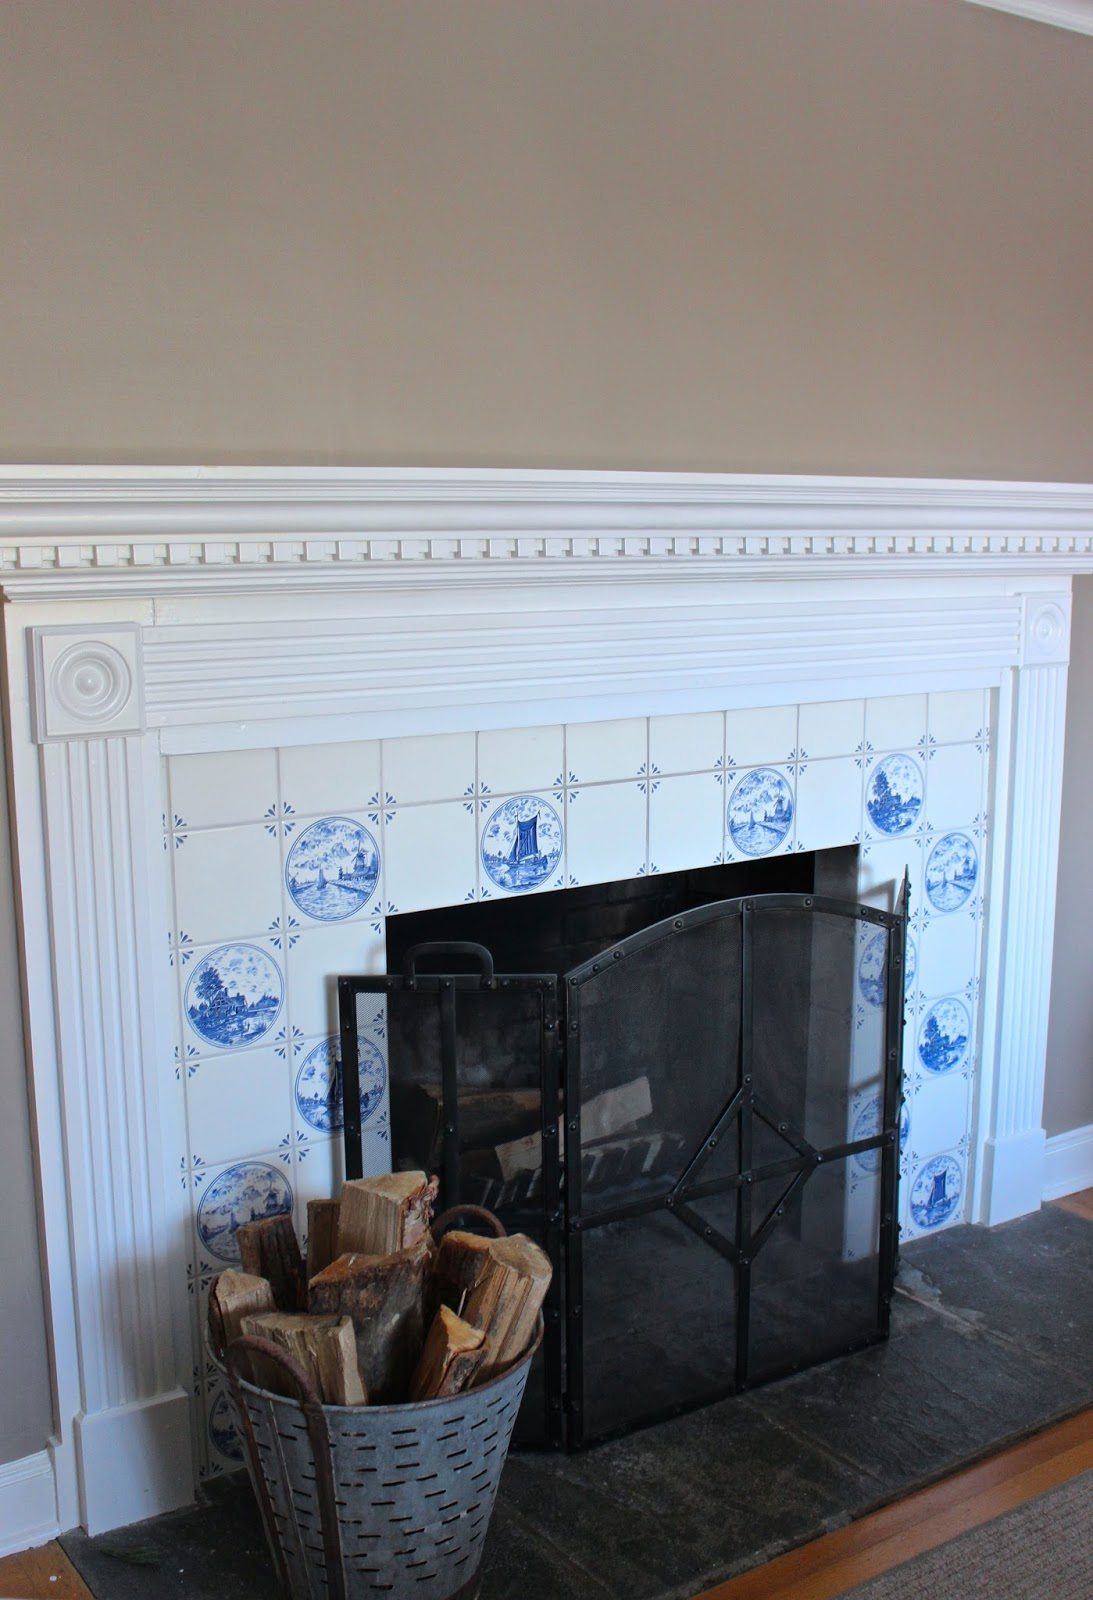 Tiled Fireplace Pictures My Blue & White Fireplace Tile - Should It Stay Or Go